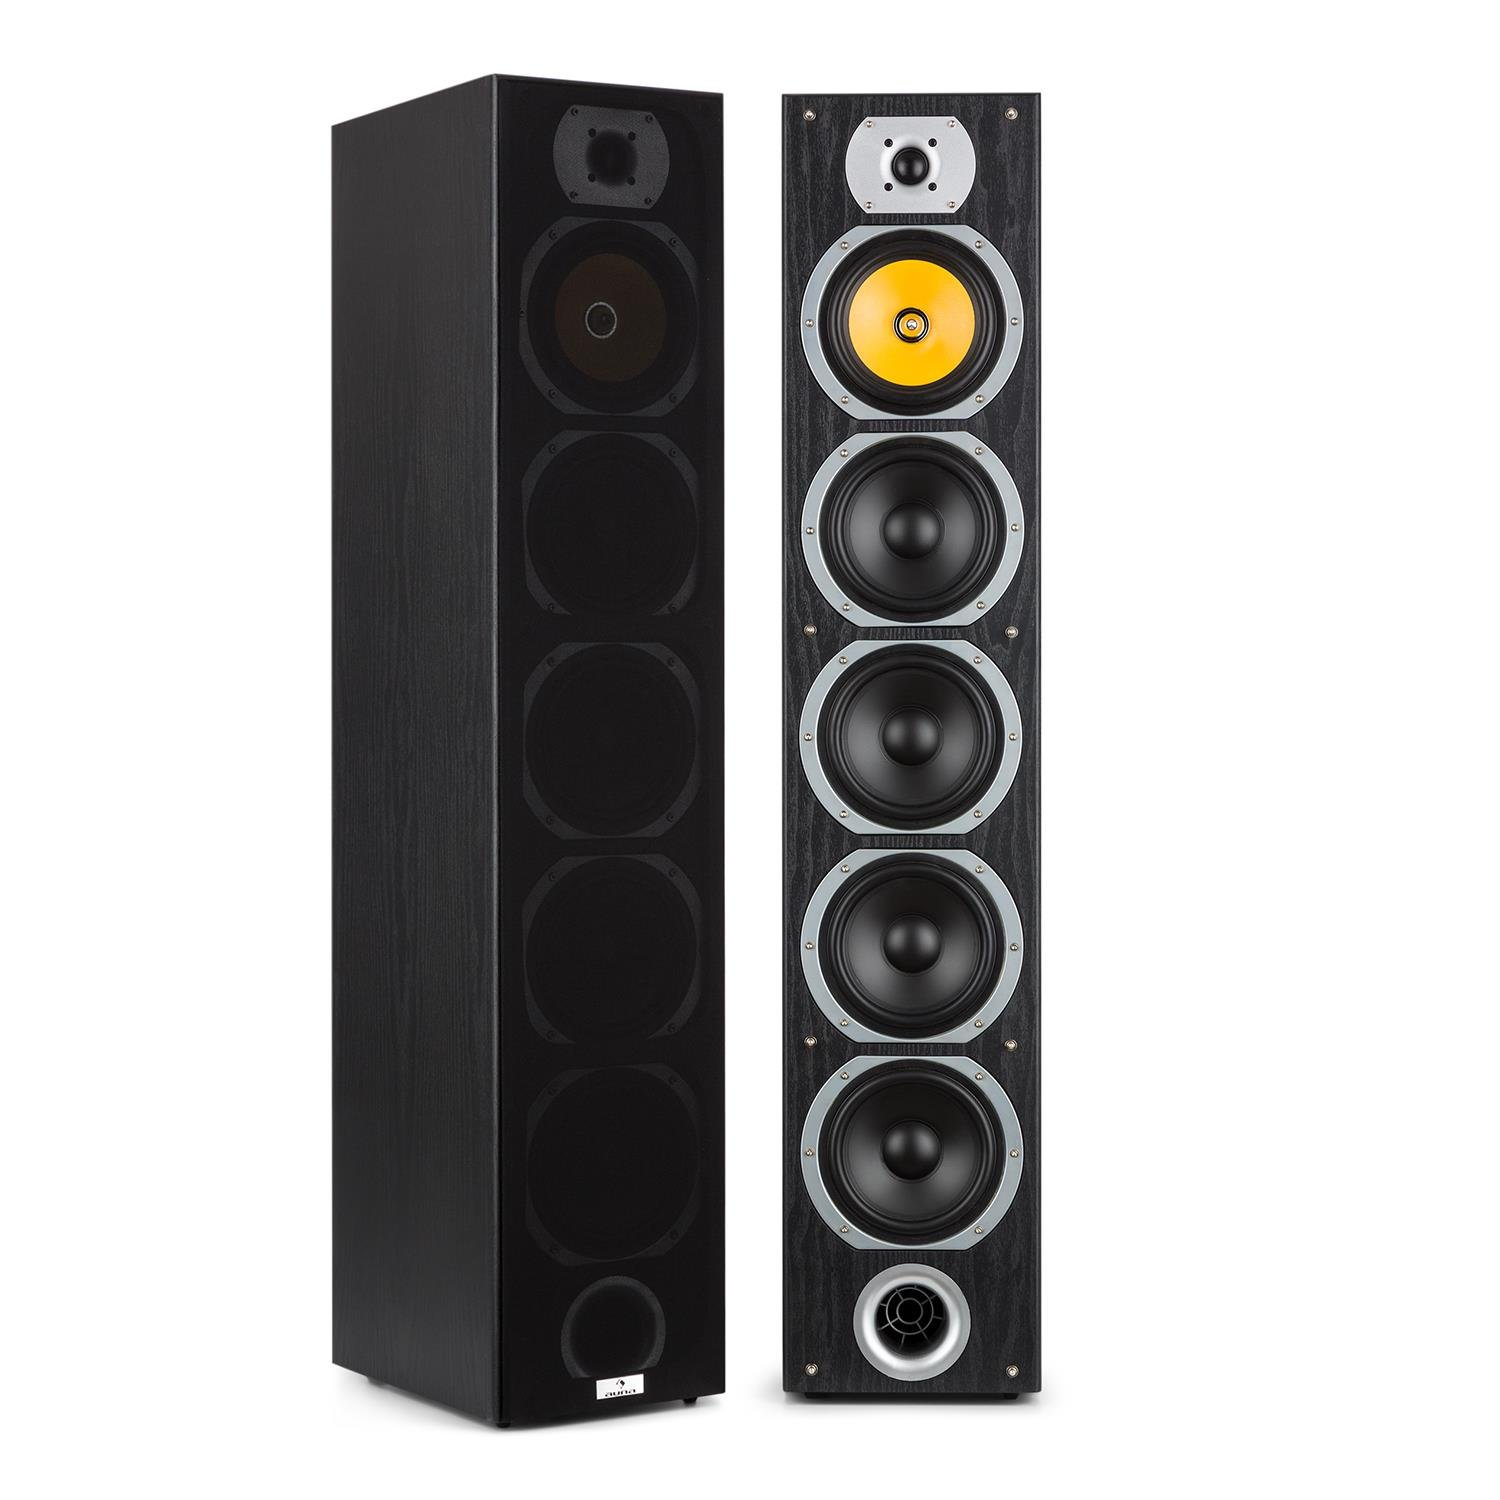 Skytronic SHFT52B Tower Speakers /• Pair /• Floor Standing /• HiFi Home Theatre /• 500W /• Side-Subwoofer /• Elegant Design /• Wide Frequency Range /• 88dB SPL /• 3-Way System /• 8 Ohm Impedance /• Black